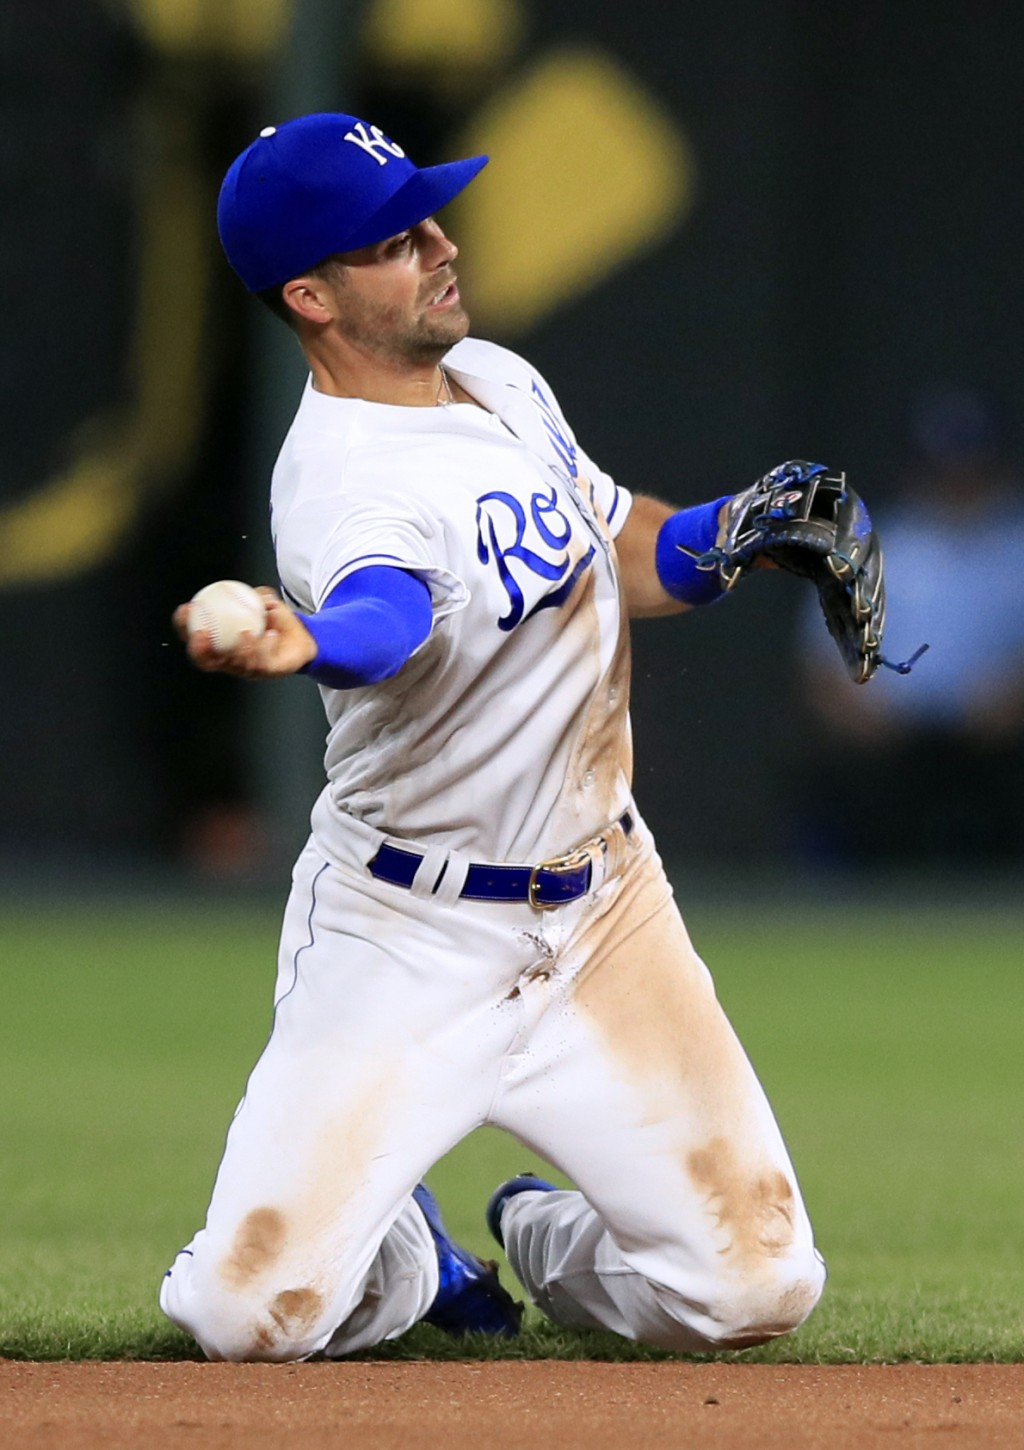 Kansas City Royals second baseman Whit Merrifield throws out Detroit Tigers' Ronny Rodriguez during the seventh inning of a baseball game at Kauffman